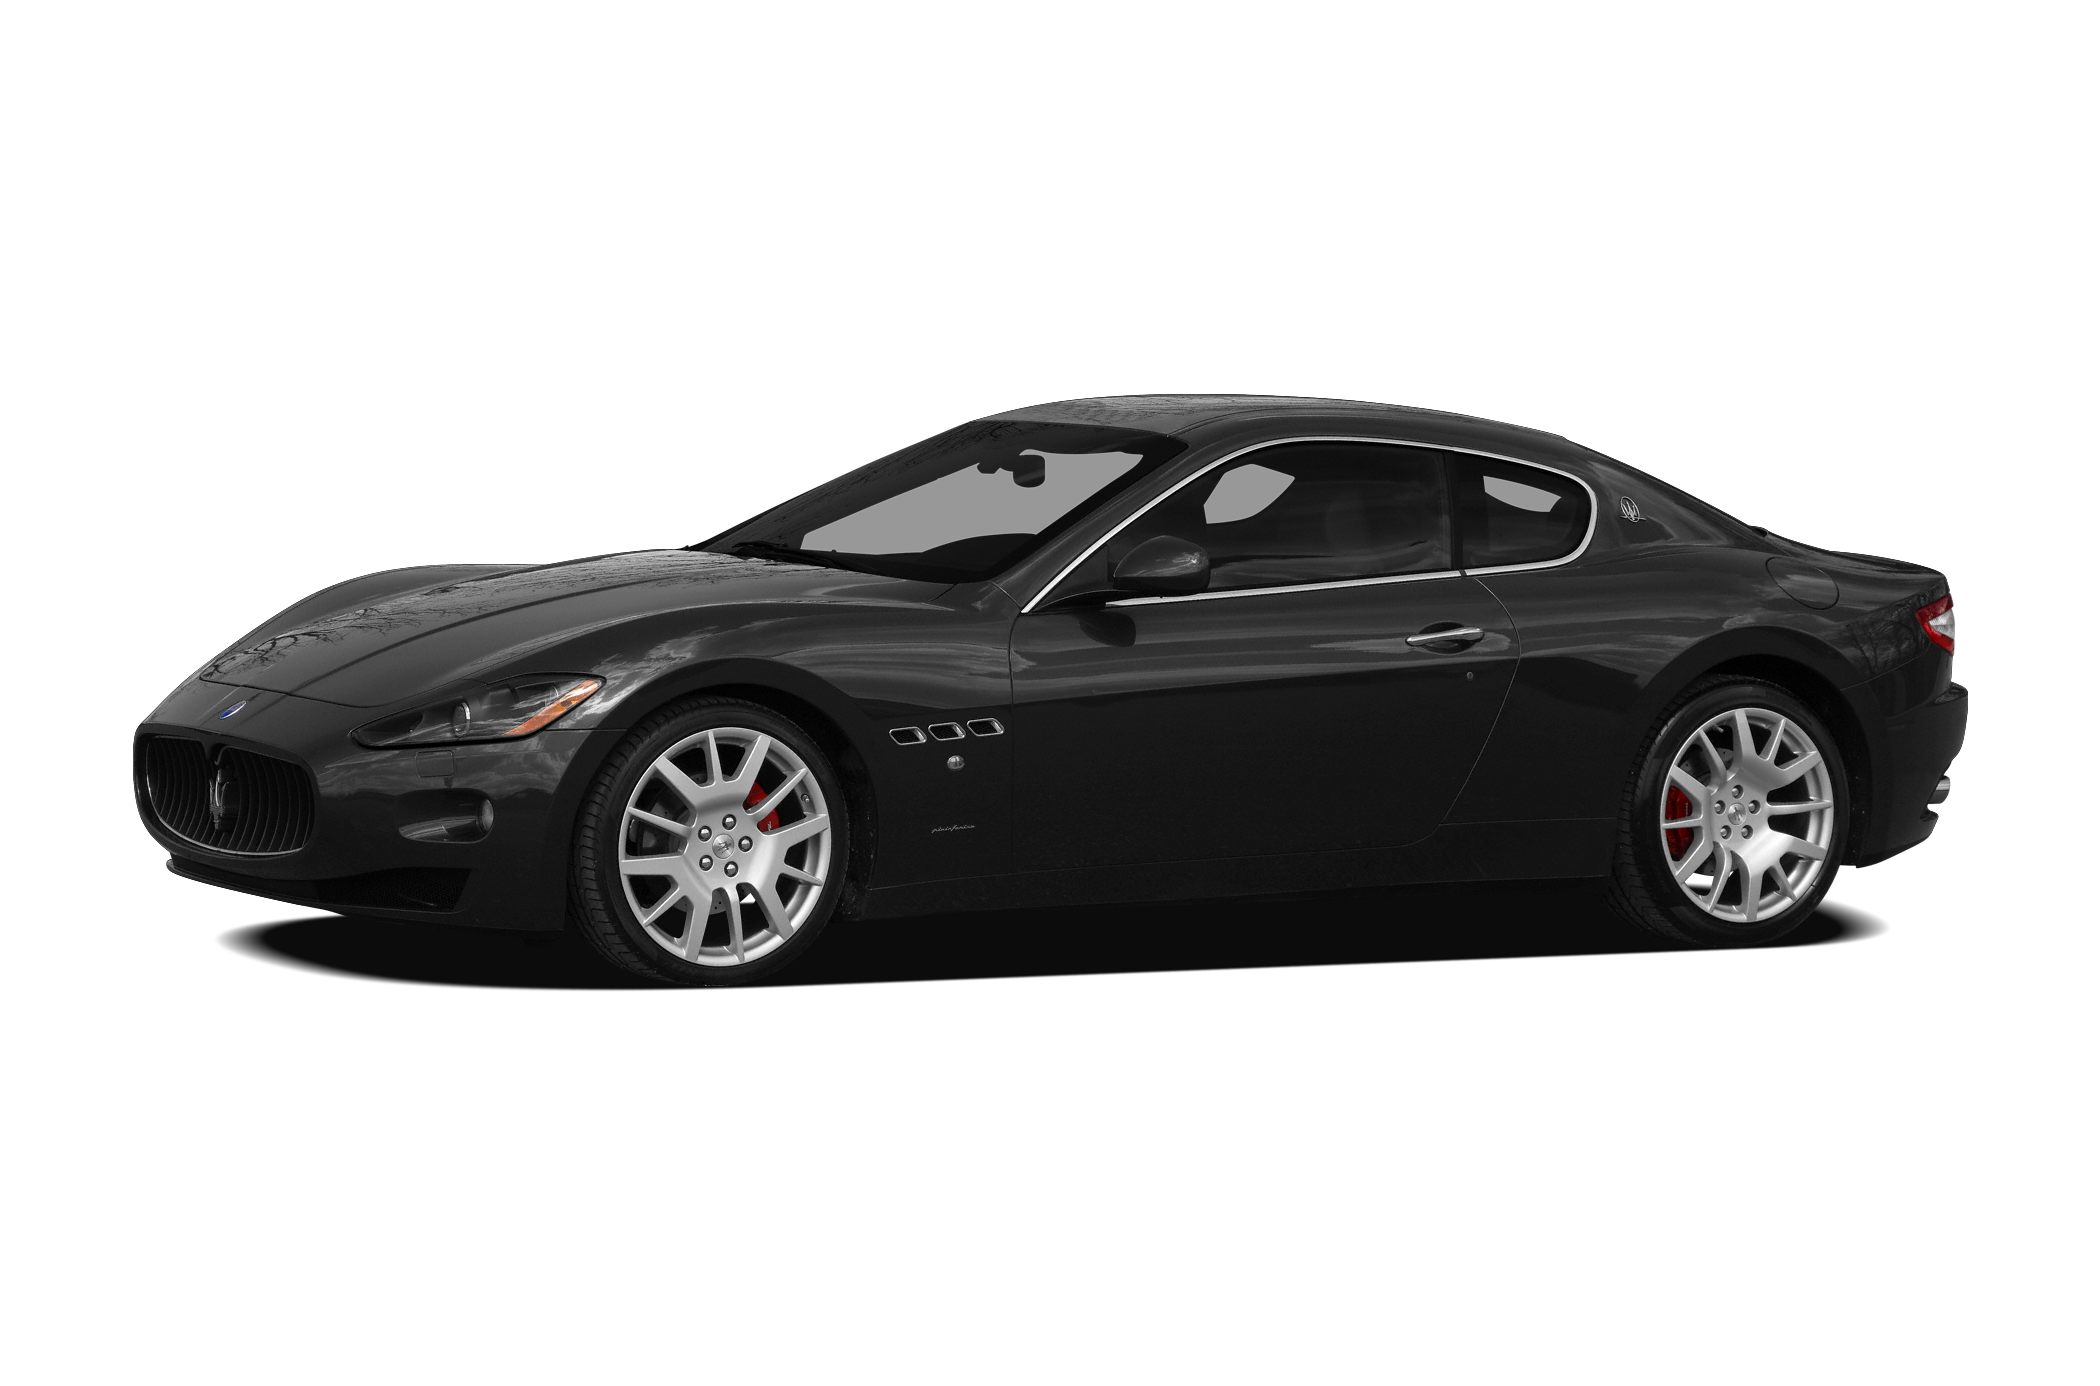 2009 Maserati GranTurismo Coupe for sale in Springfield for $0 with 26,100 miles